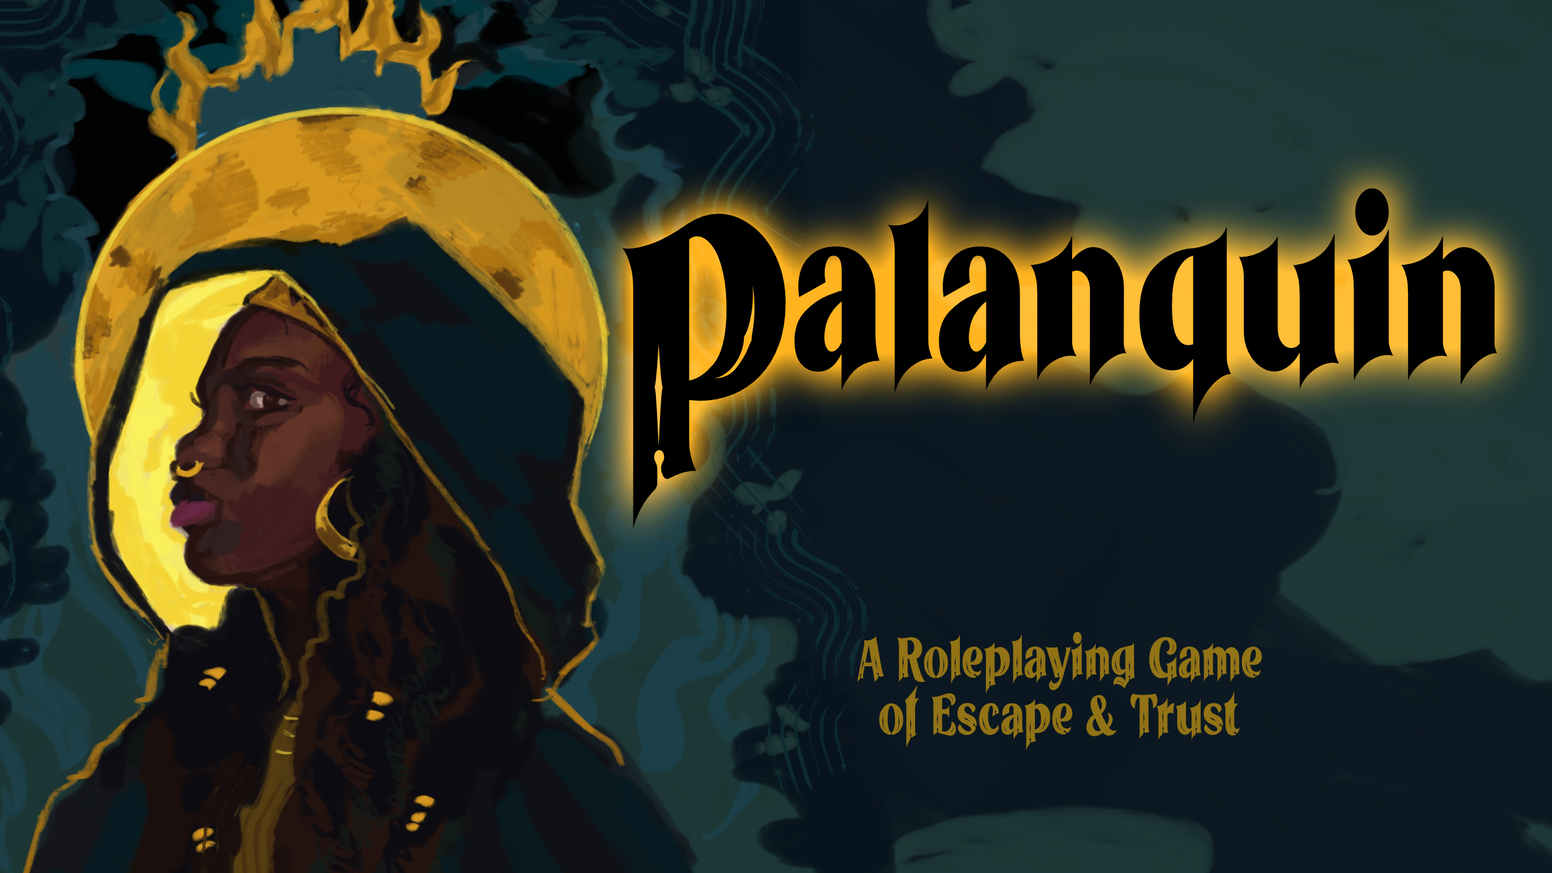 A zinequest roleplaying game about the Heir and her escape from a palace coup.